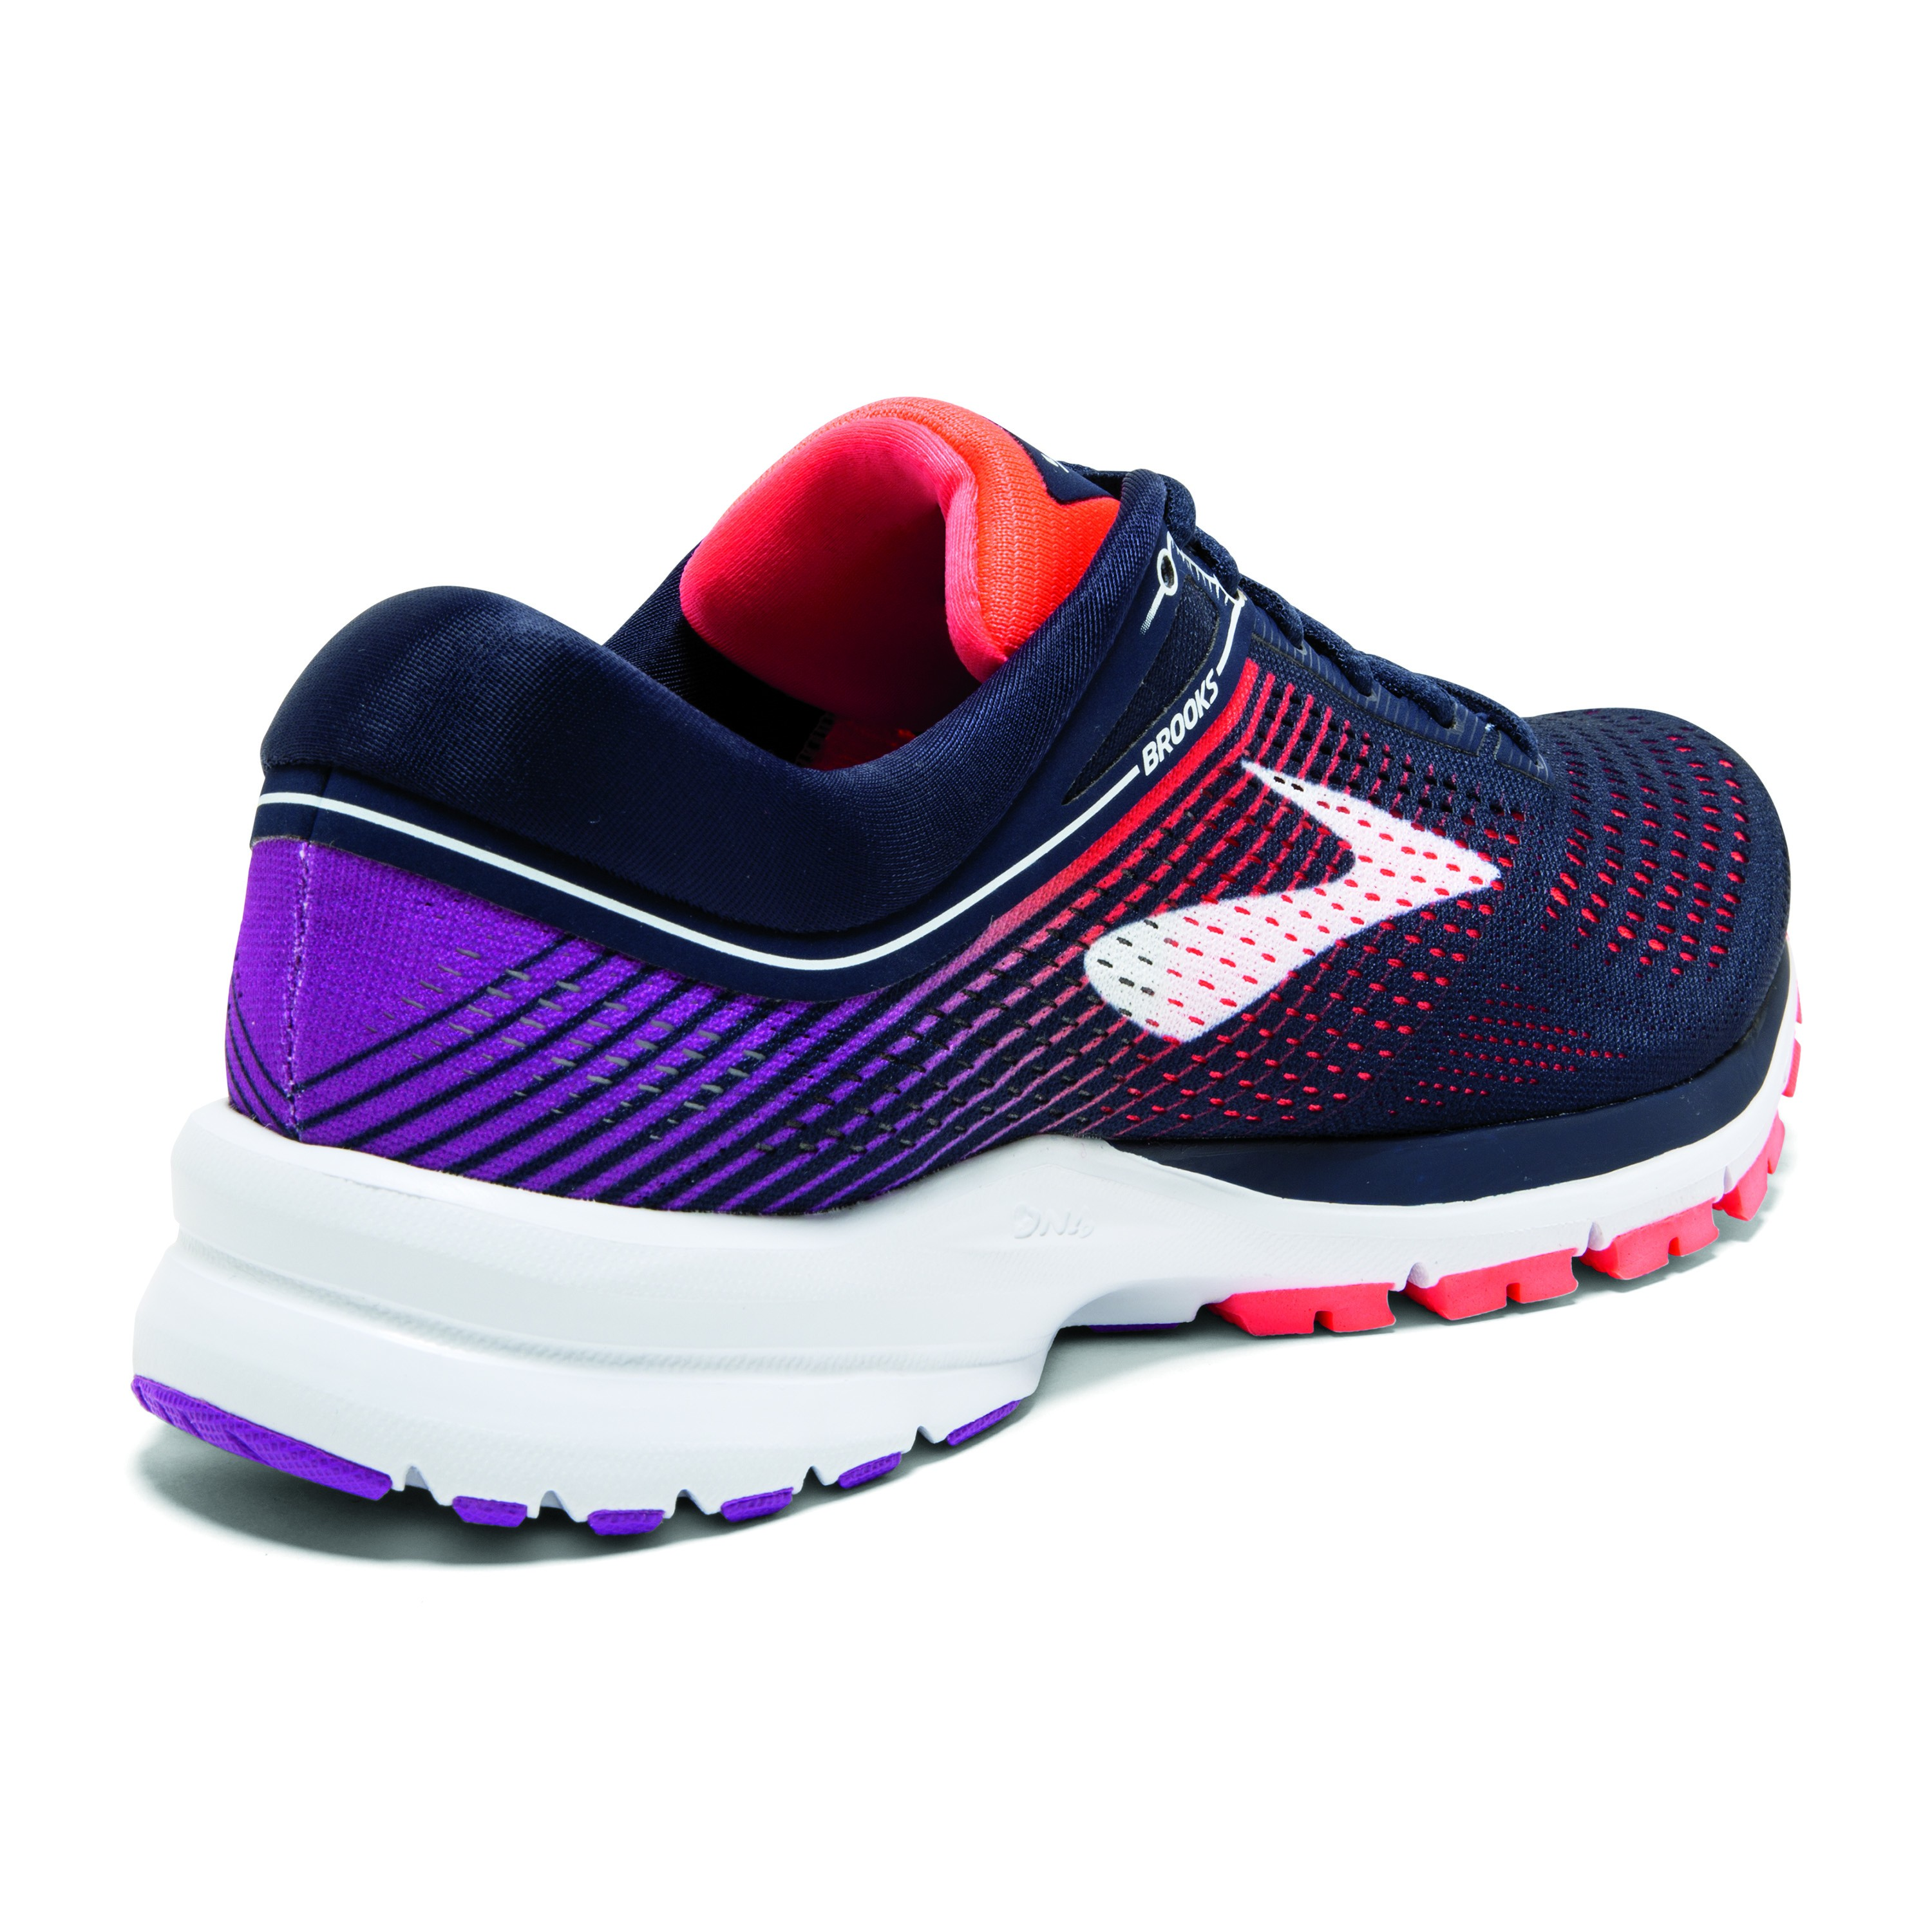 detailed pictures b459d 50d38 Running Brooks Launch 5 Pink/Black Donna 1202661B460 - Acquista su ...